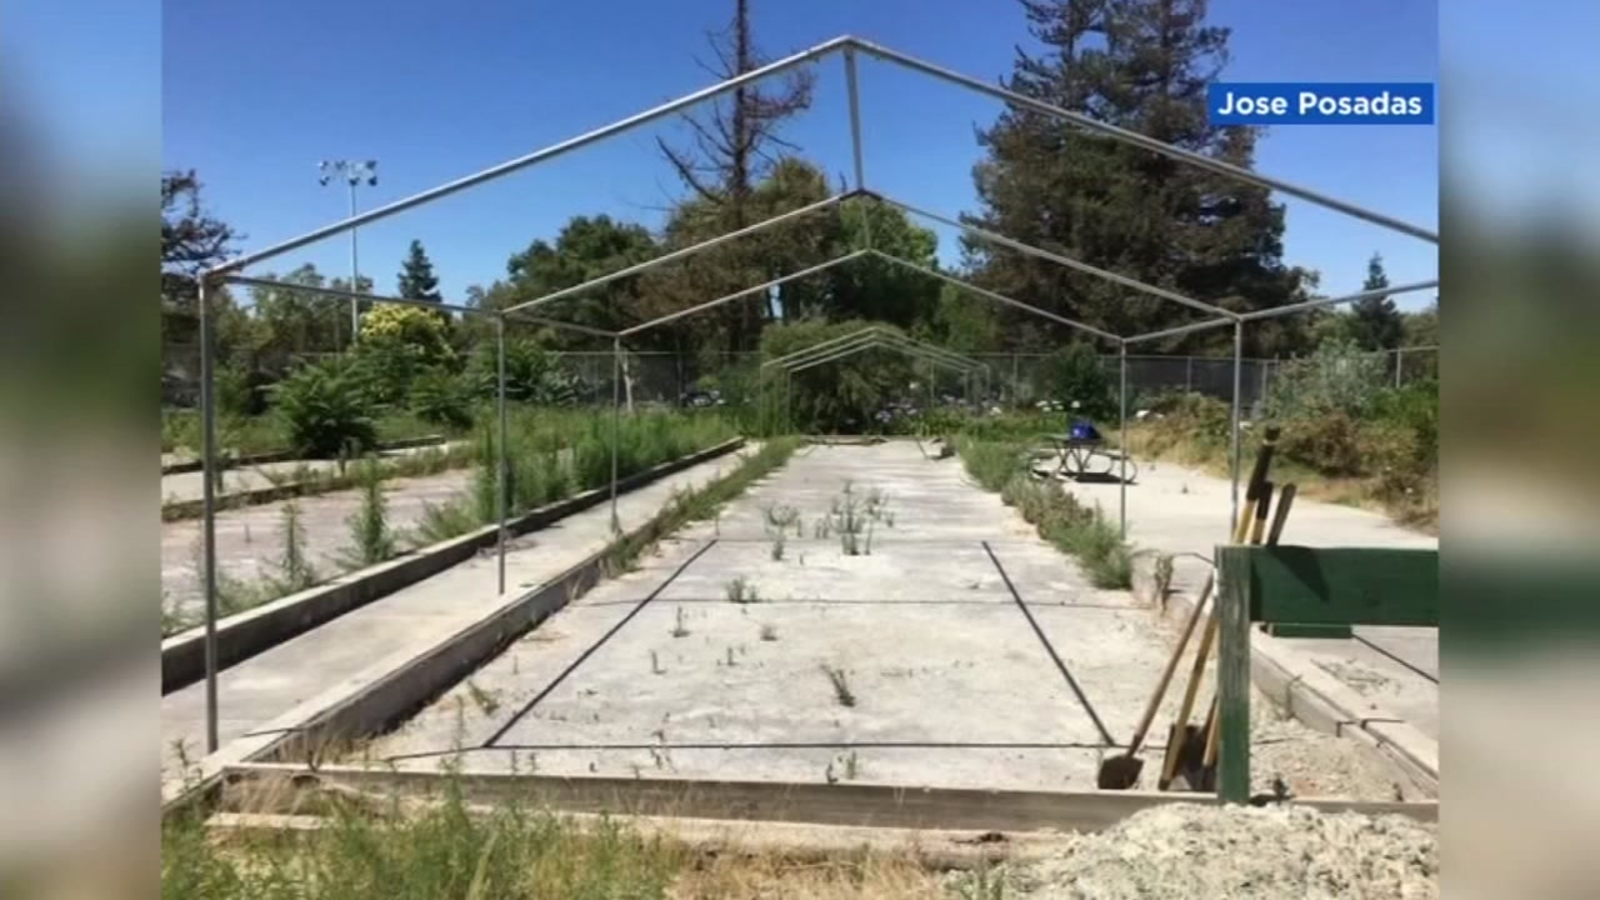 Bocce court 'come back' by South Bay community